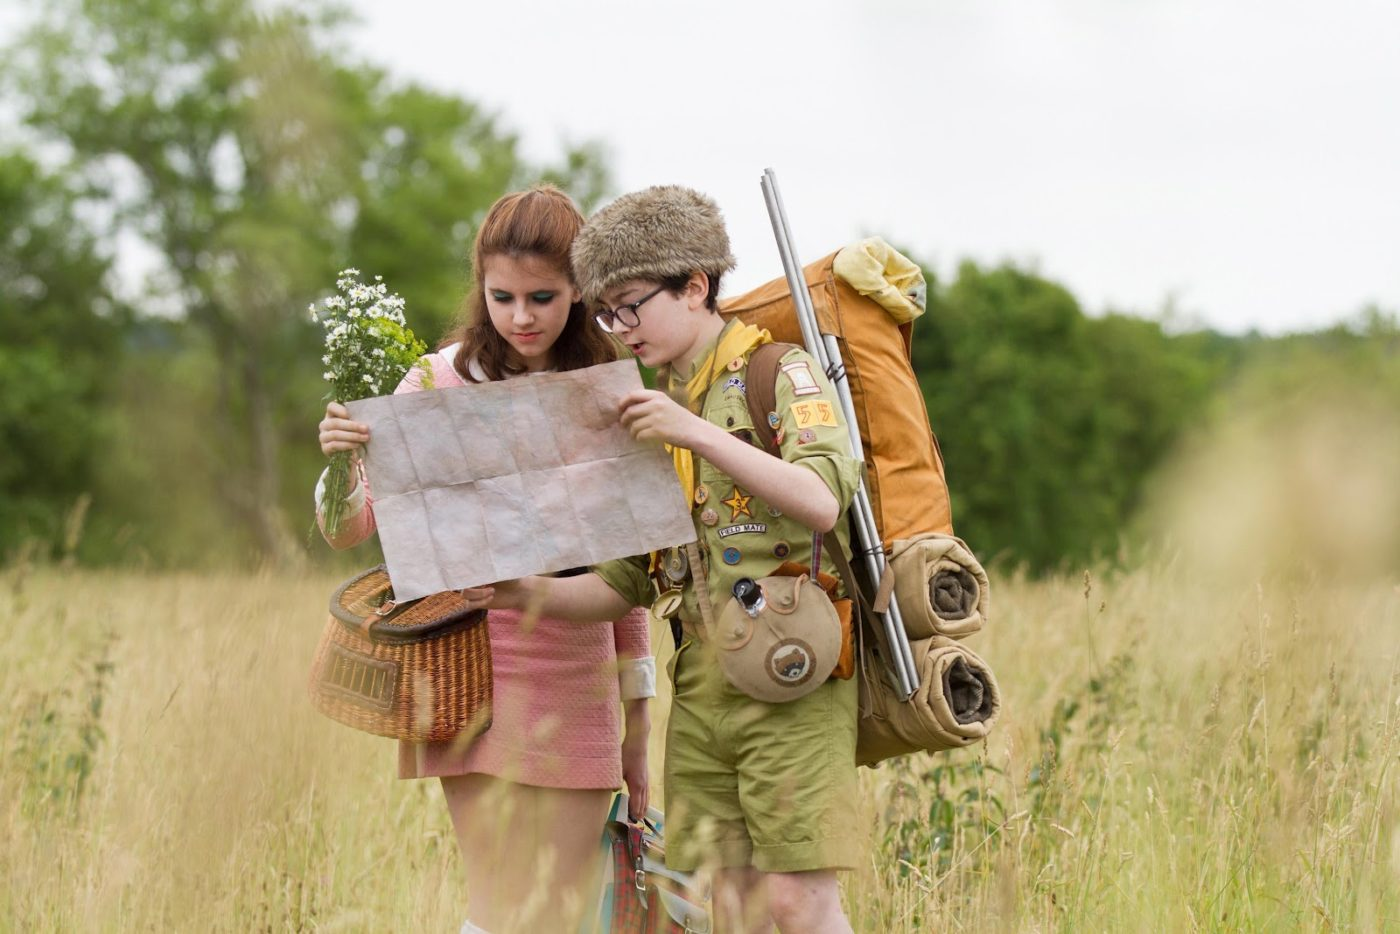 moonrise kingdom wes anderson netflix aanbod Nederland murray, willis, norton2